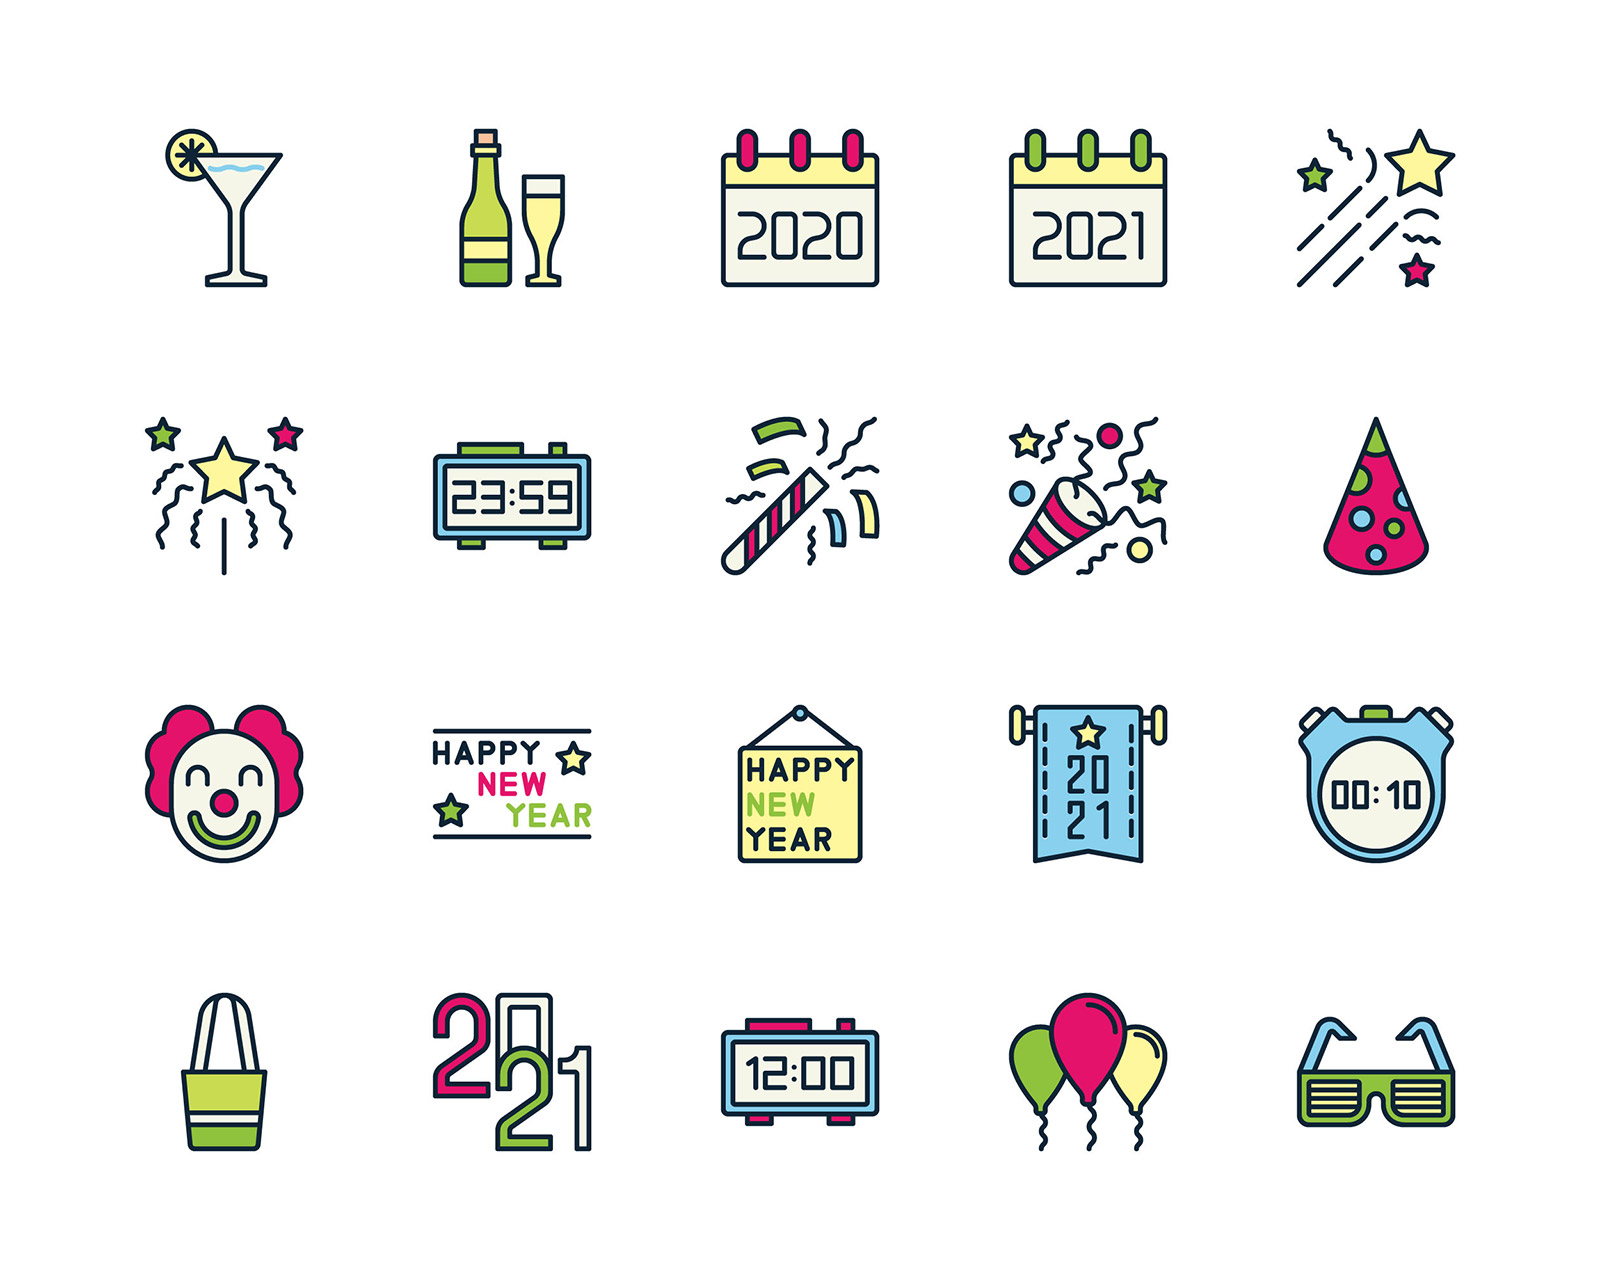 Happy New Year Free Color Icons